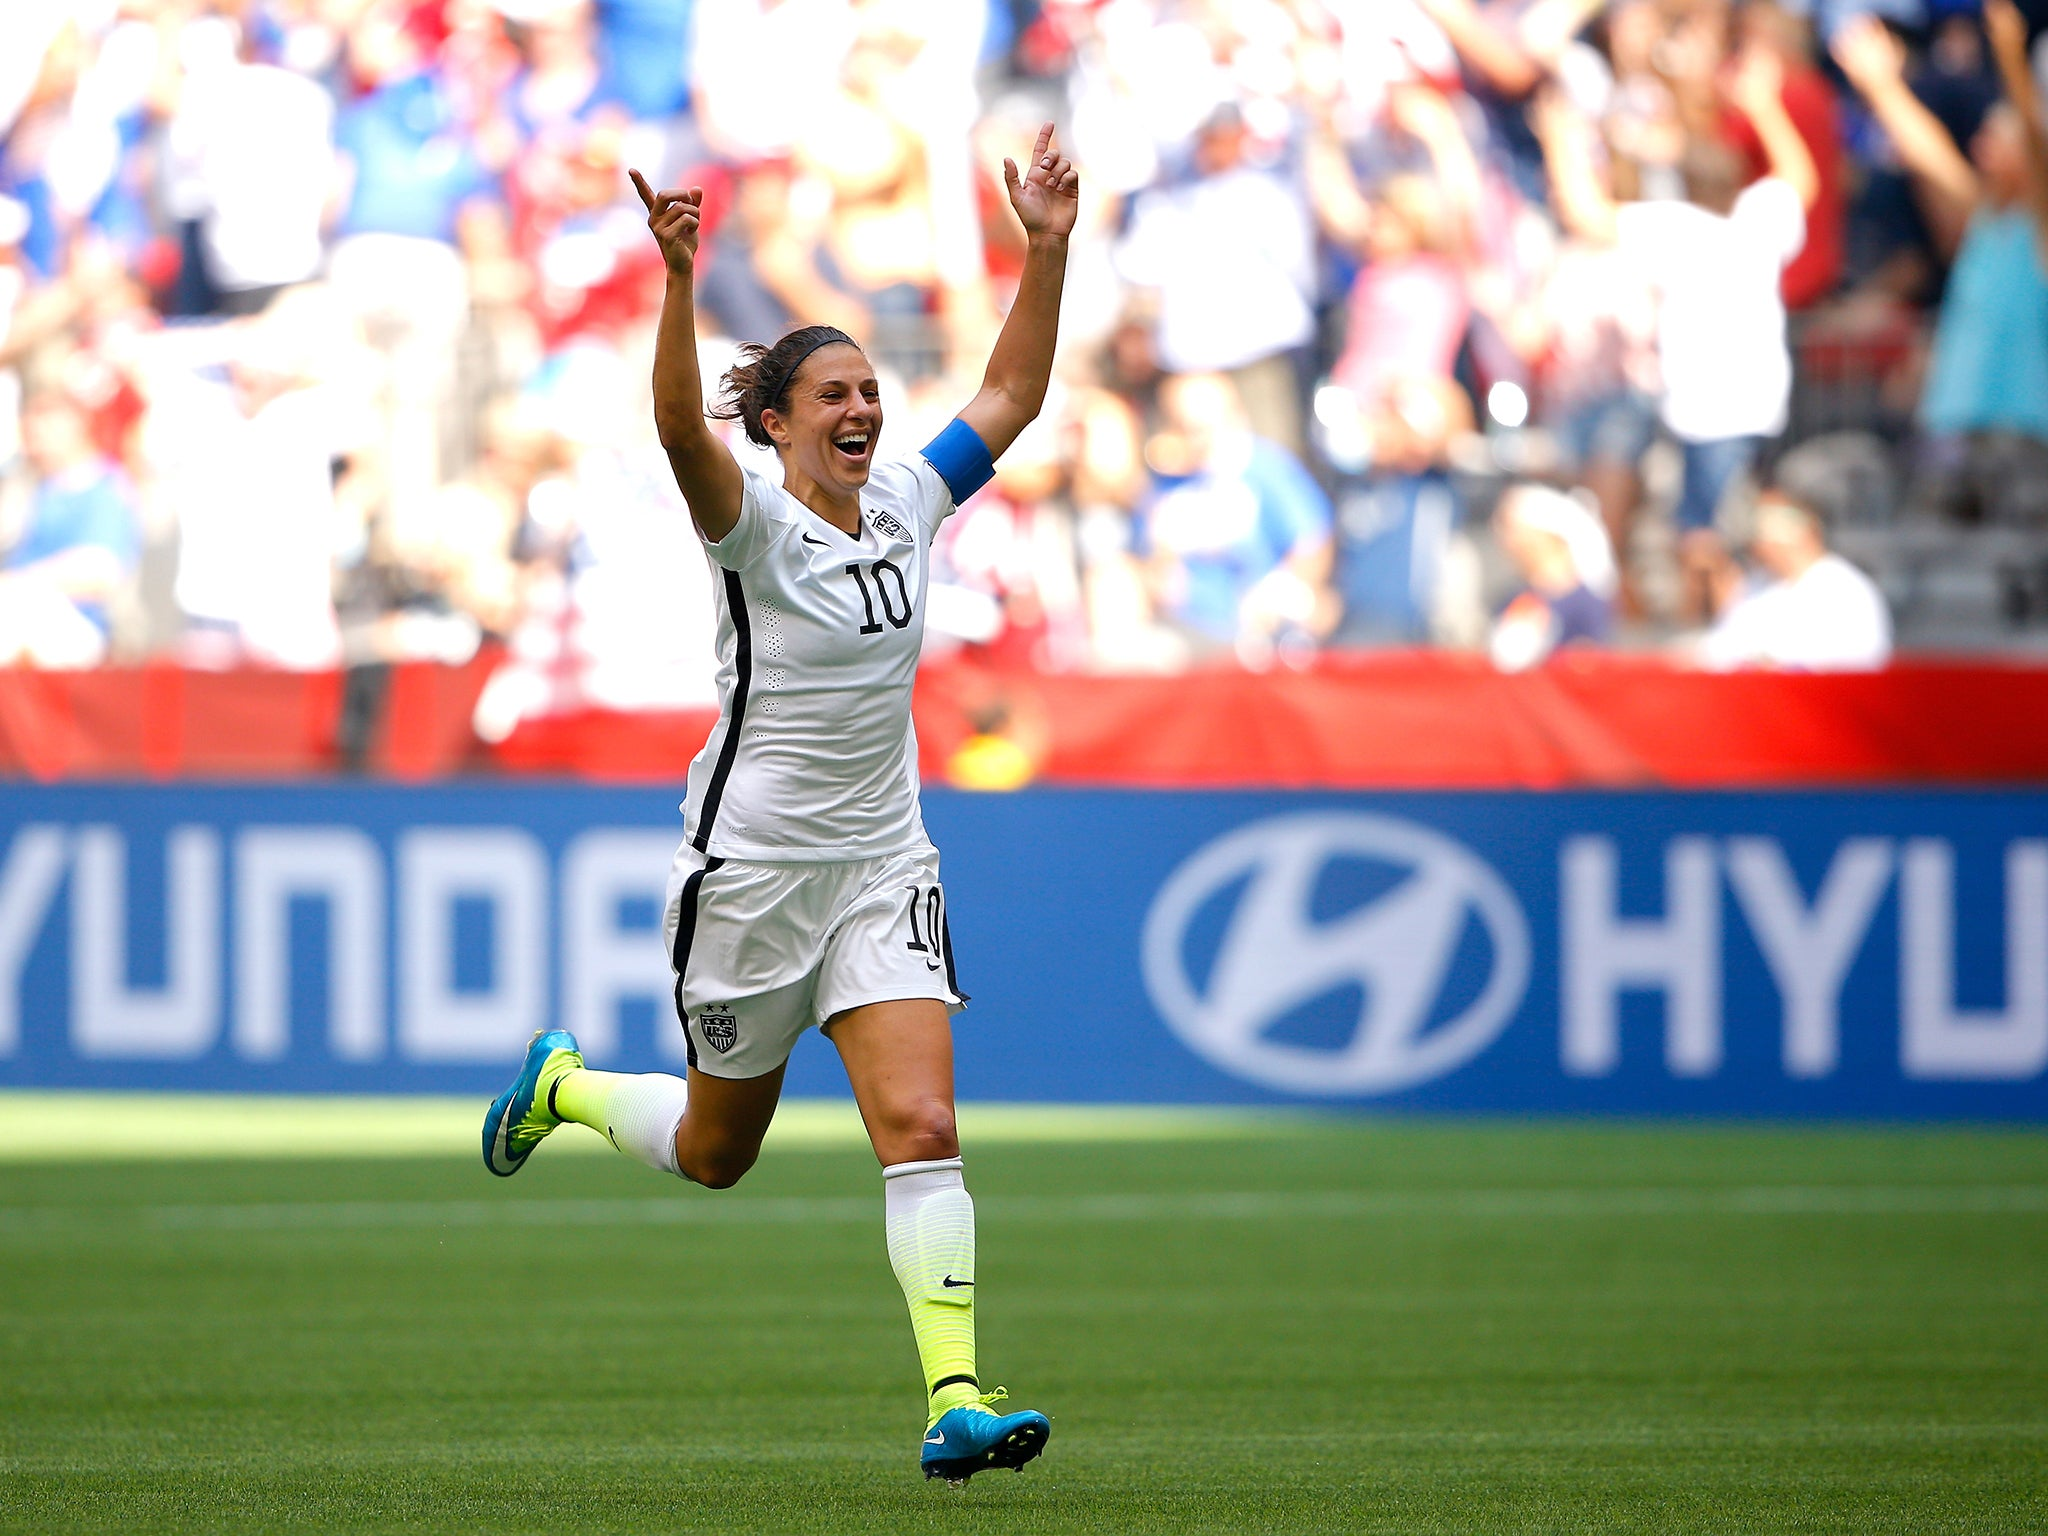 Carli Lloyd Quotes Carli Lloyd Scores Brilliant Halfway Line Goal For Women's World